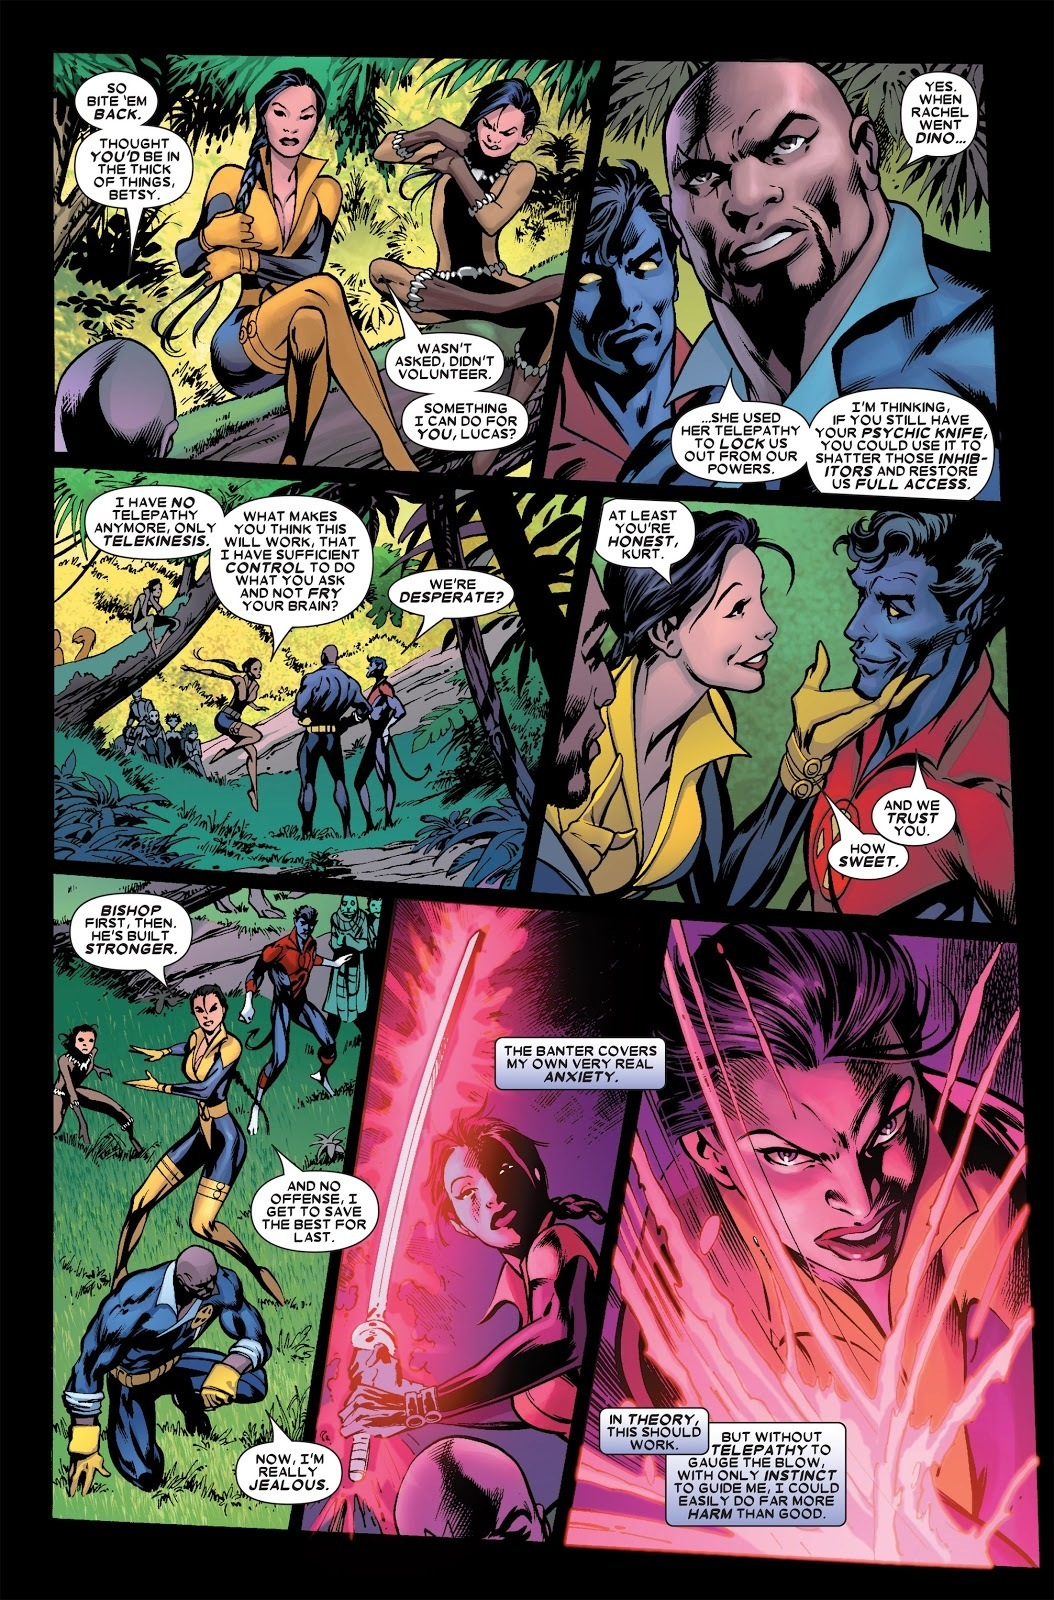 After being brainwashed by Saurians she blocks Bishop and Nightcrawler from accessing their powers